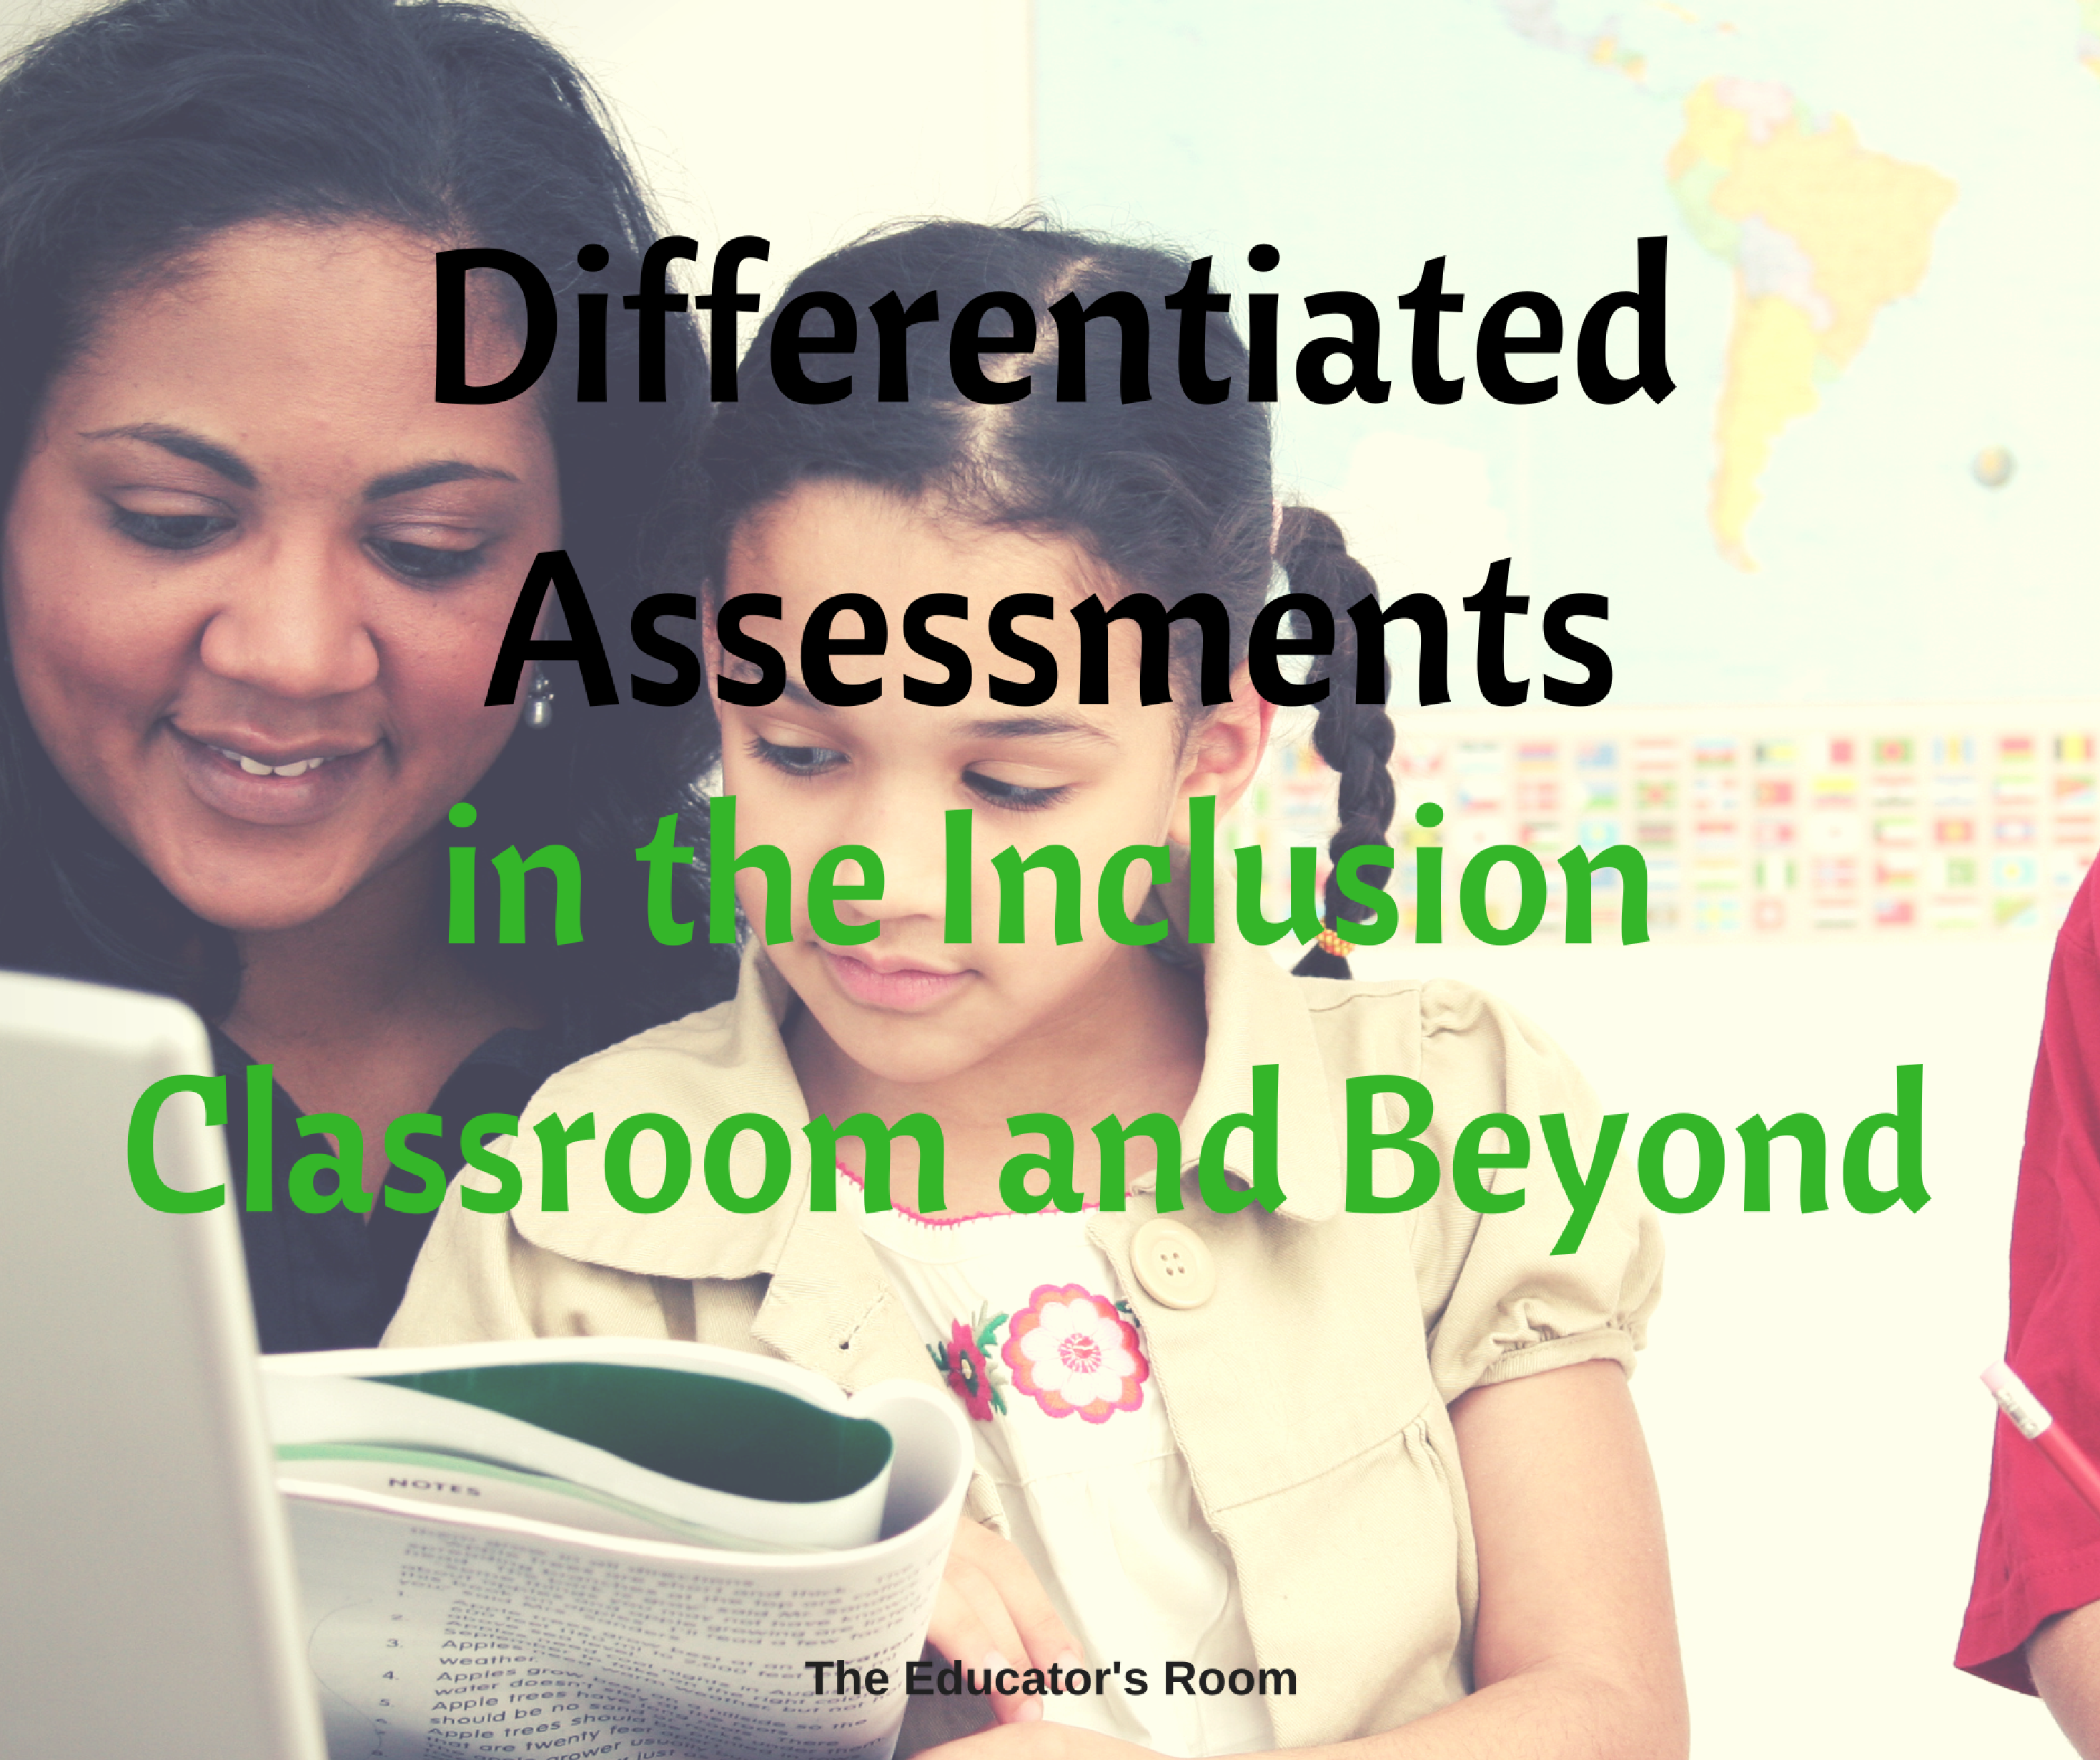 differentiated-assessments-in-the-inclusion-classroom-and-beyond